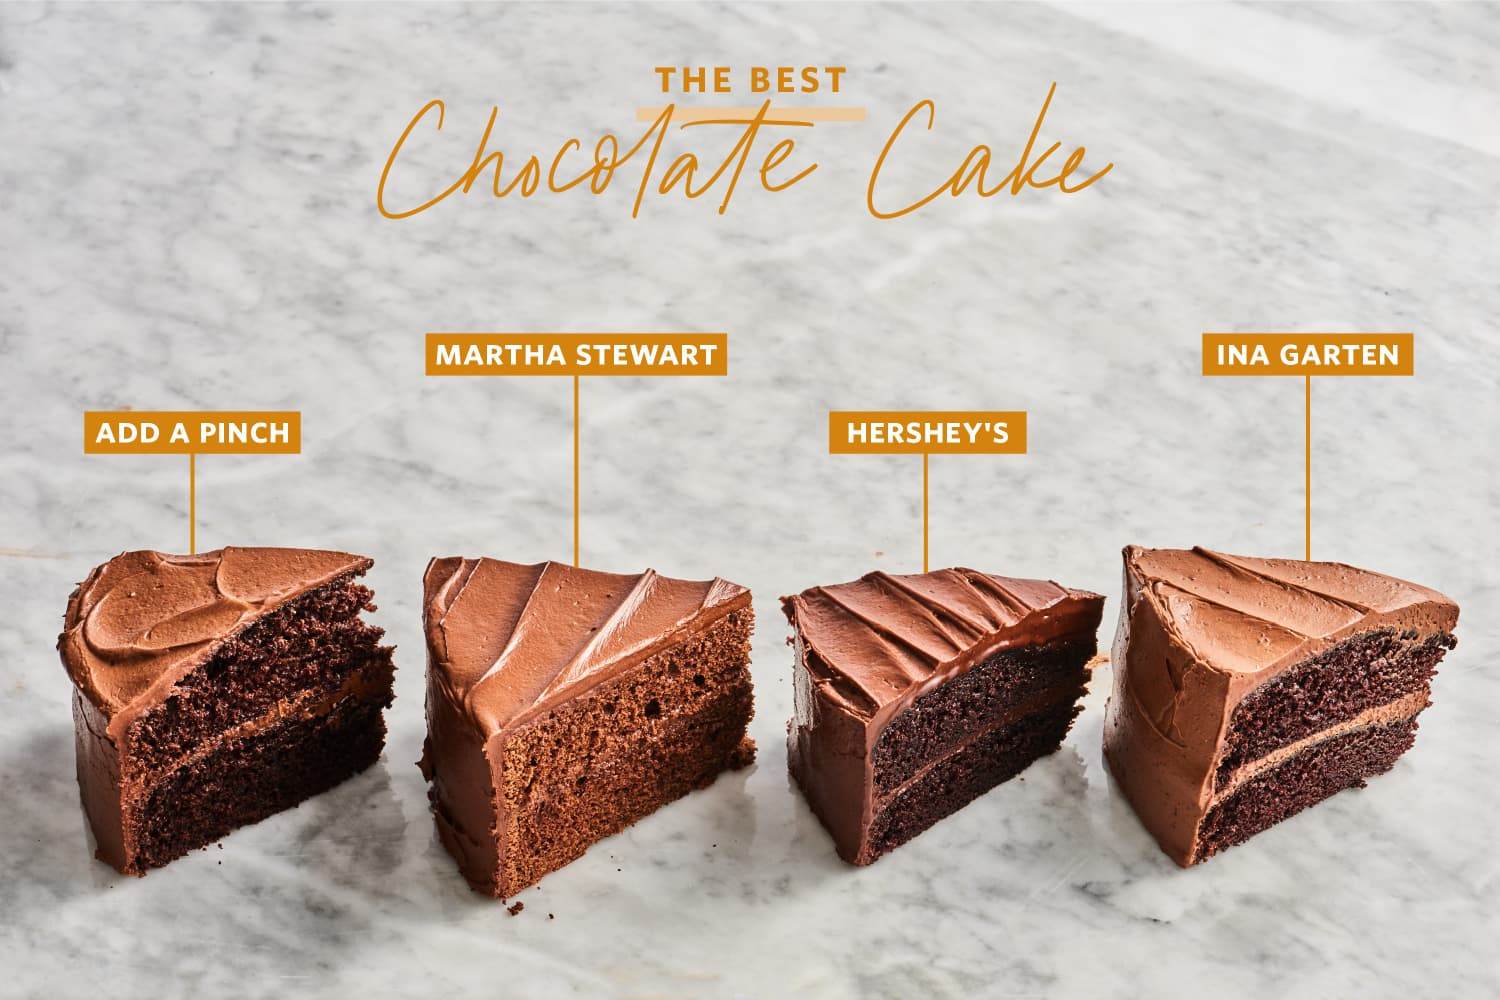 We Tested 4 Famous Chocolate Cake Recipes and Found a Clear Winner